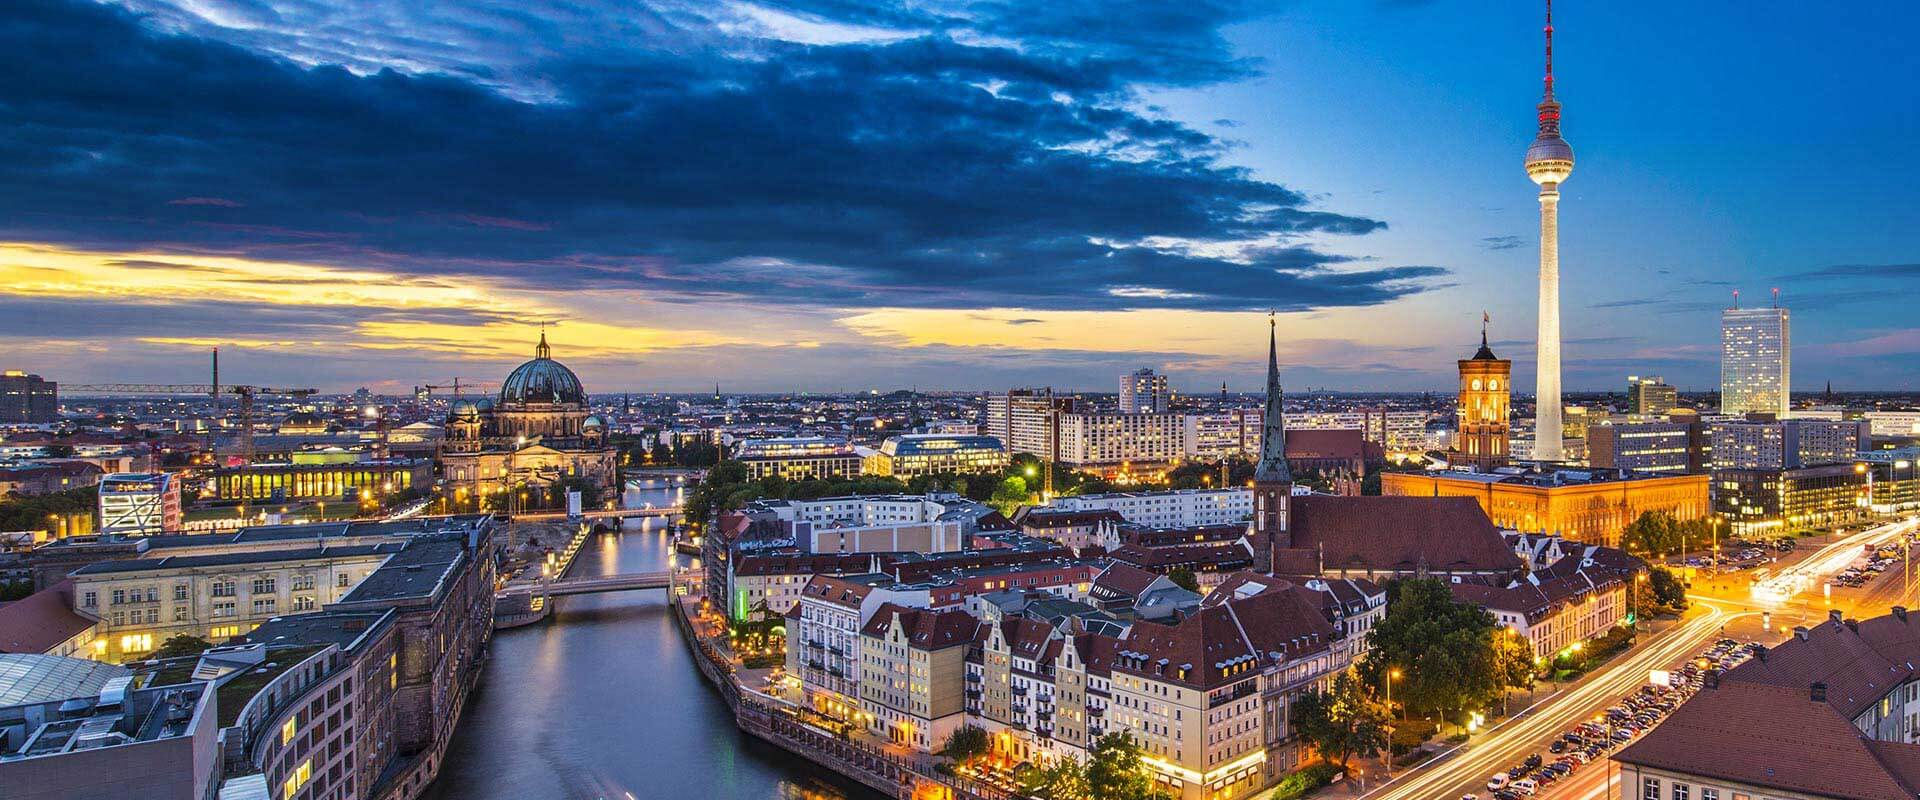 WordCamp Europe 2019 Workshops in Berlin